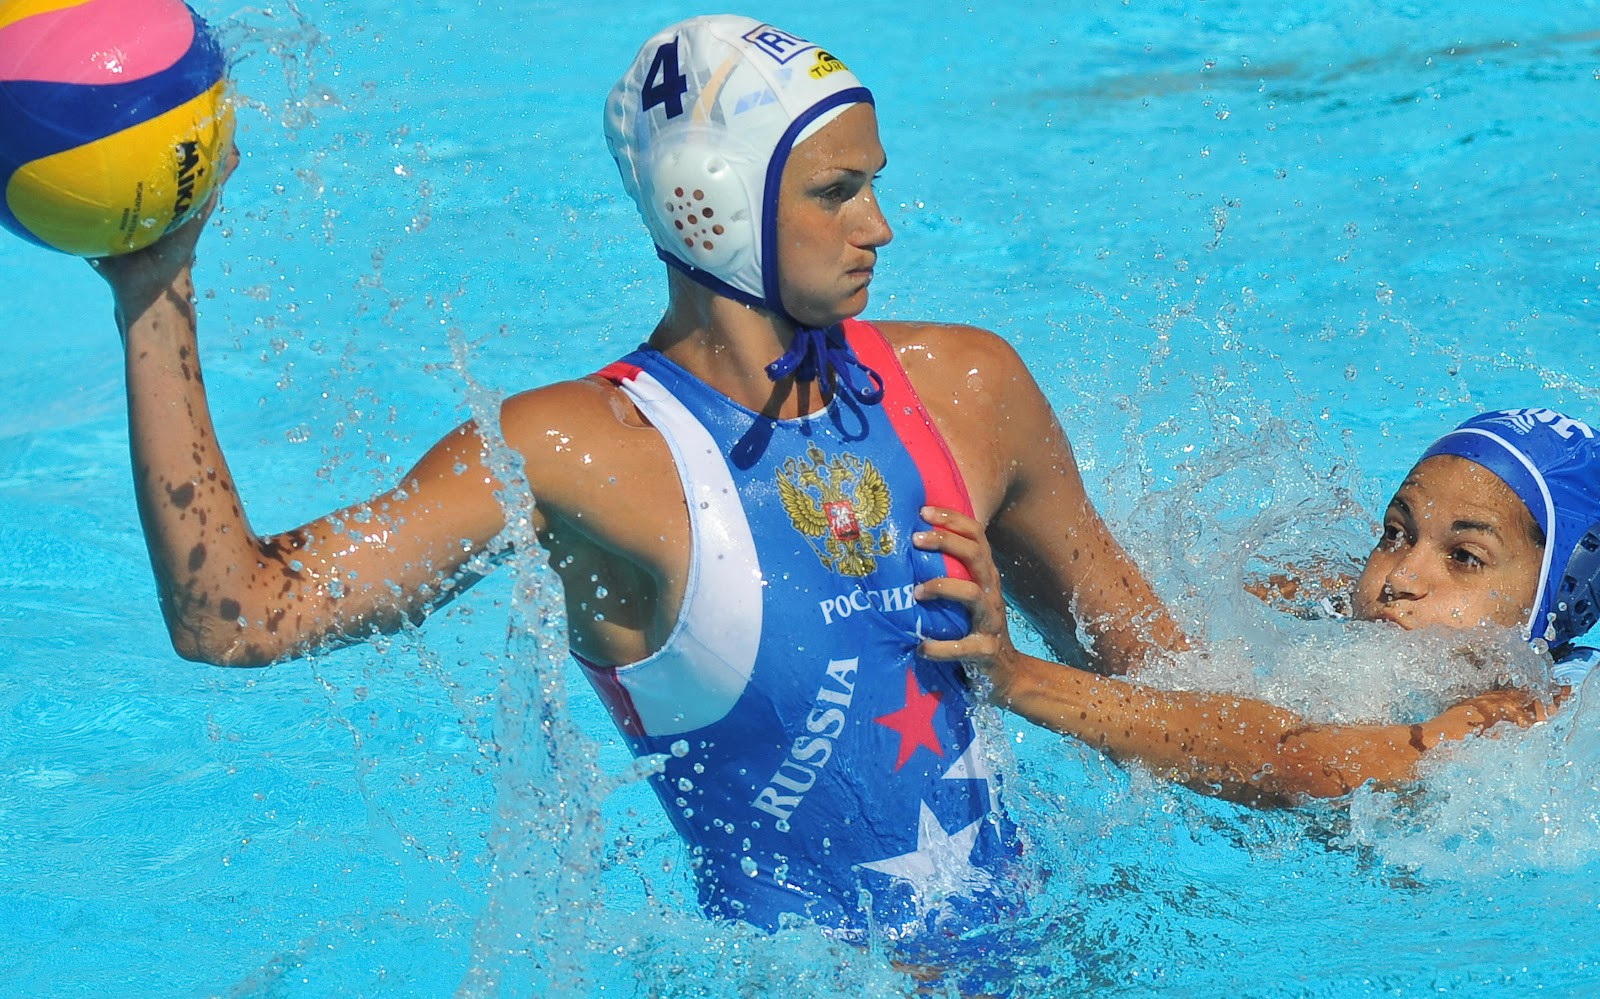 Womens water polo breast